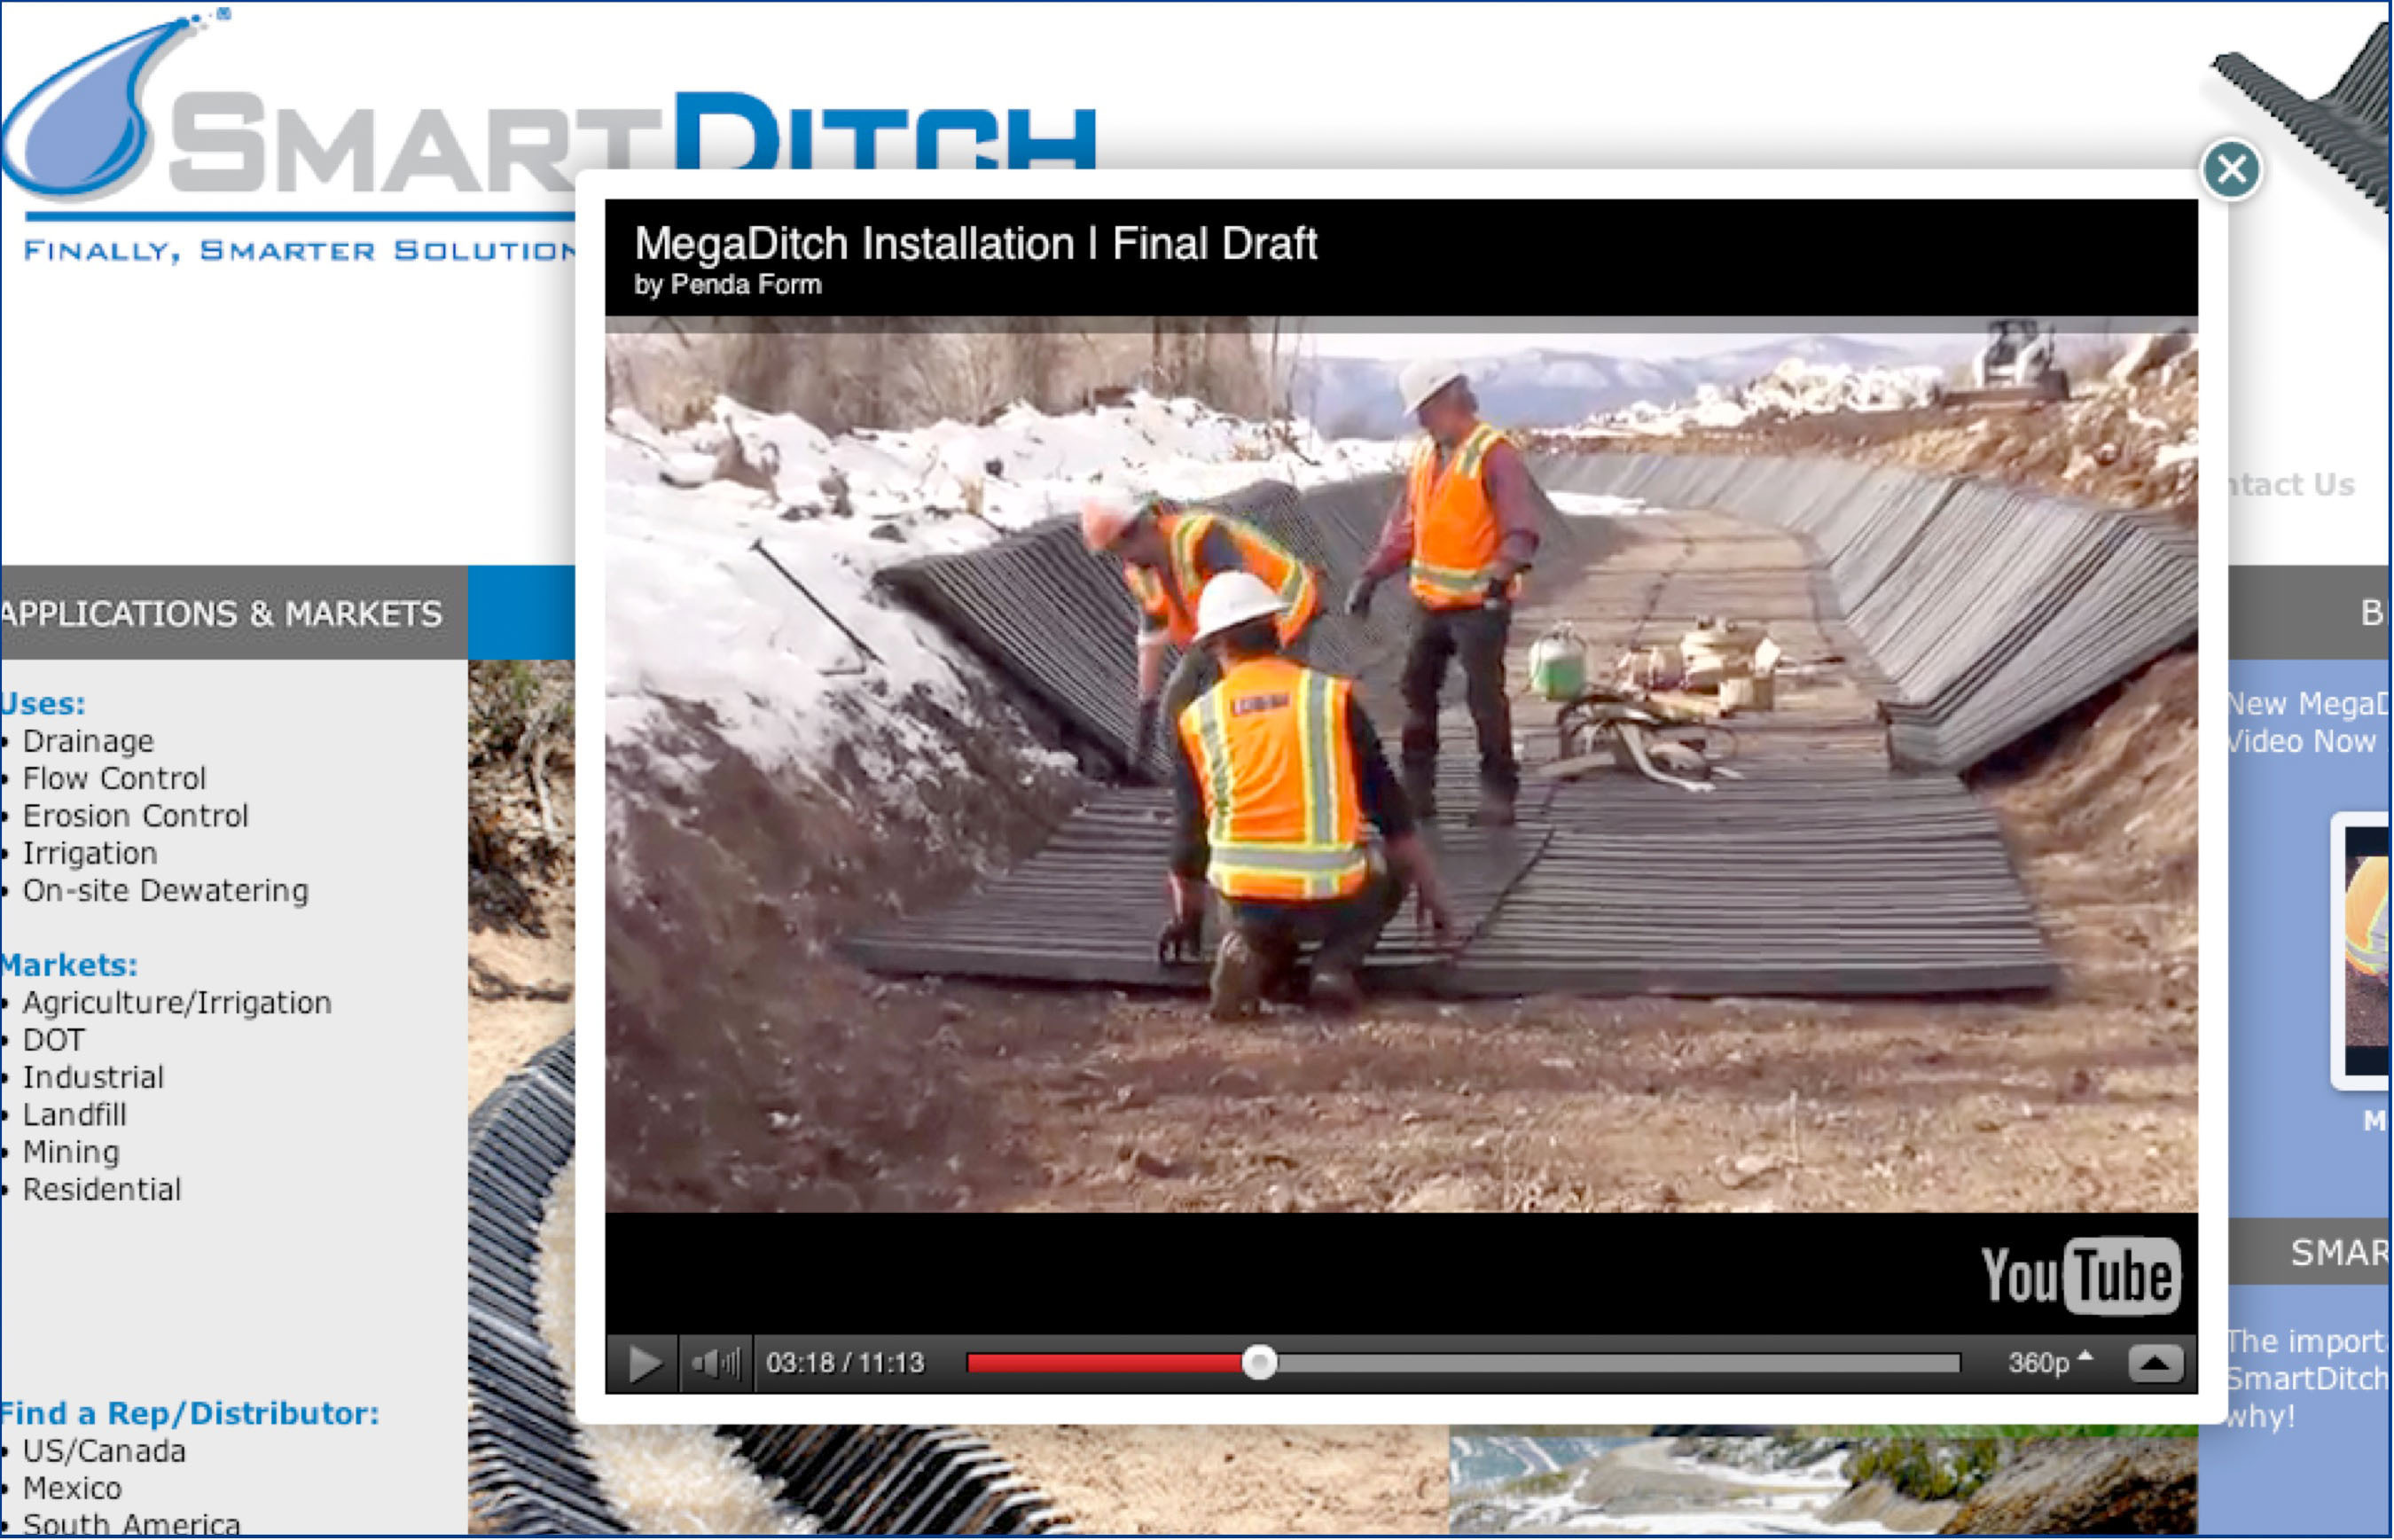 The new SmartDitch MegaDitch Installation Guidelines video can be viewed directly from the company website: www.smartditch.com/resource-videos.html.  (PRNewsFoto/PendaForm)